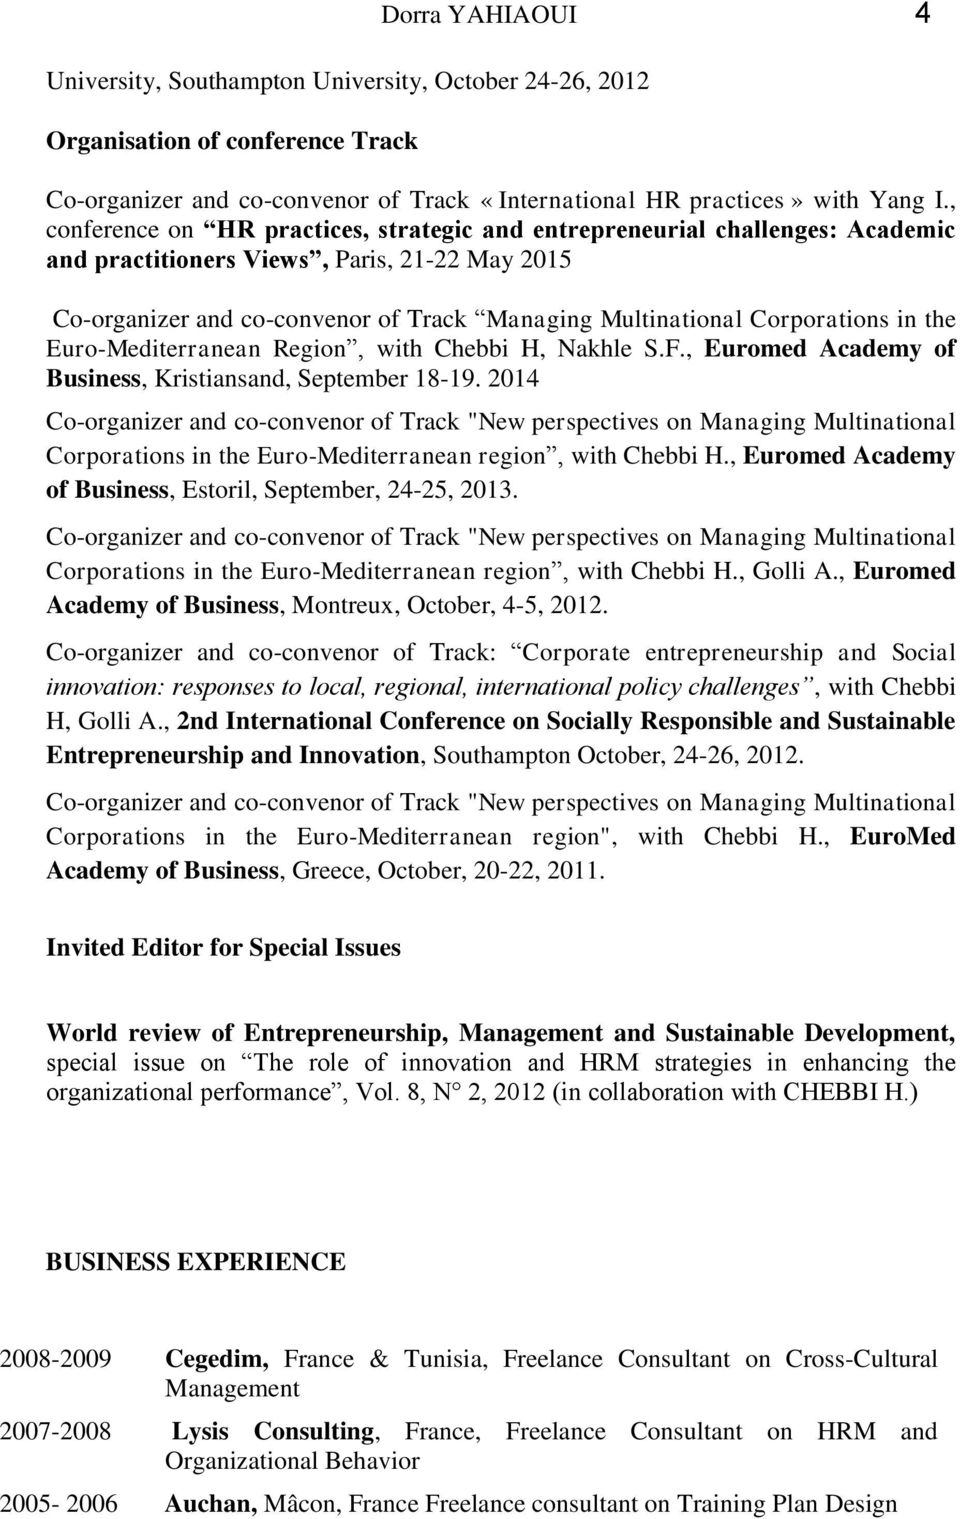 Corporations in the Euro-Mediterranean Region, with Chebbi H, Nakhle S.F., Euromed Academy of Business, Kristiansand, September 18-19.